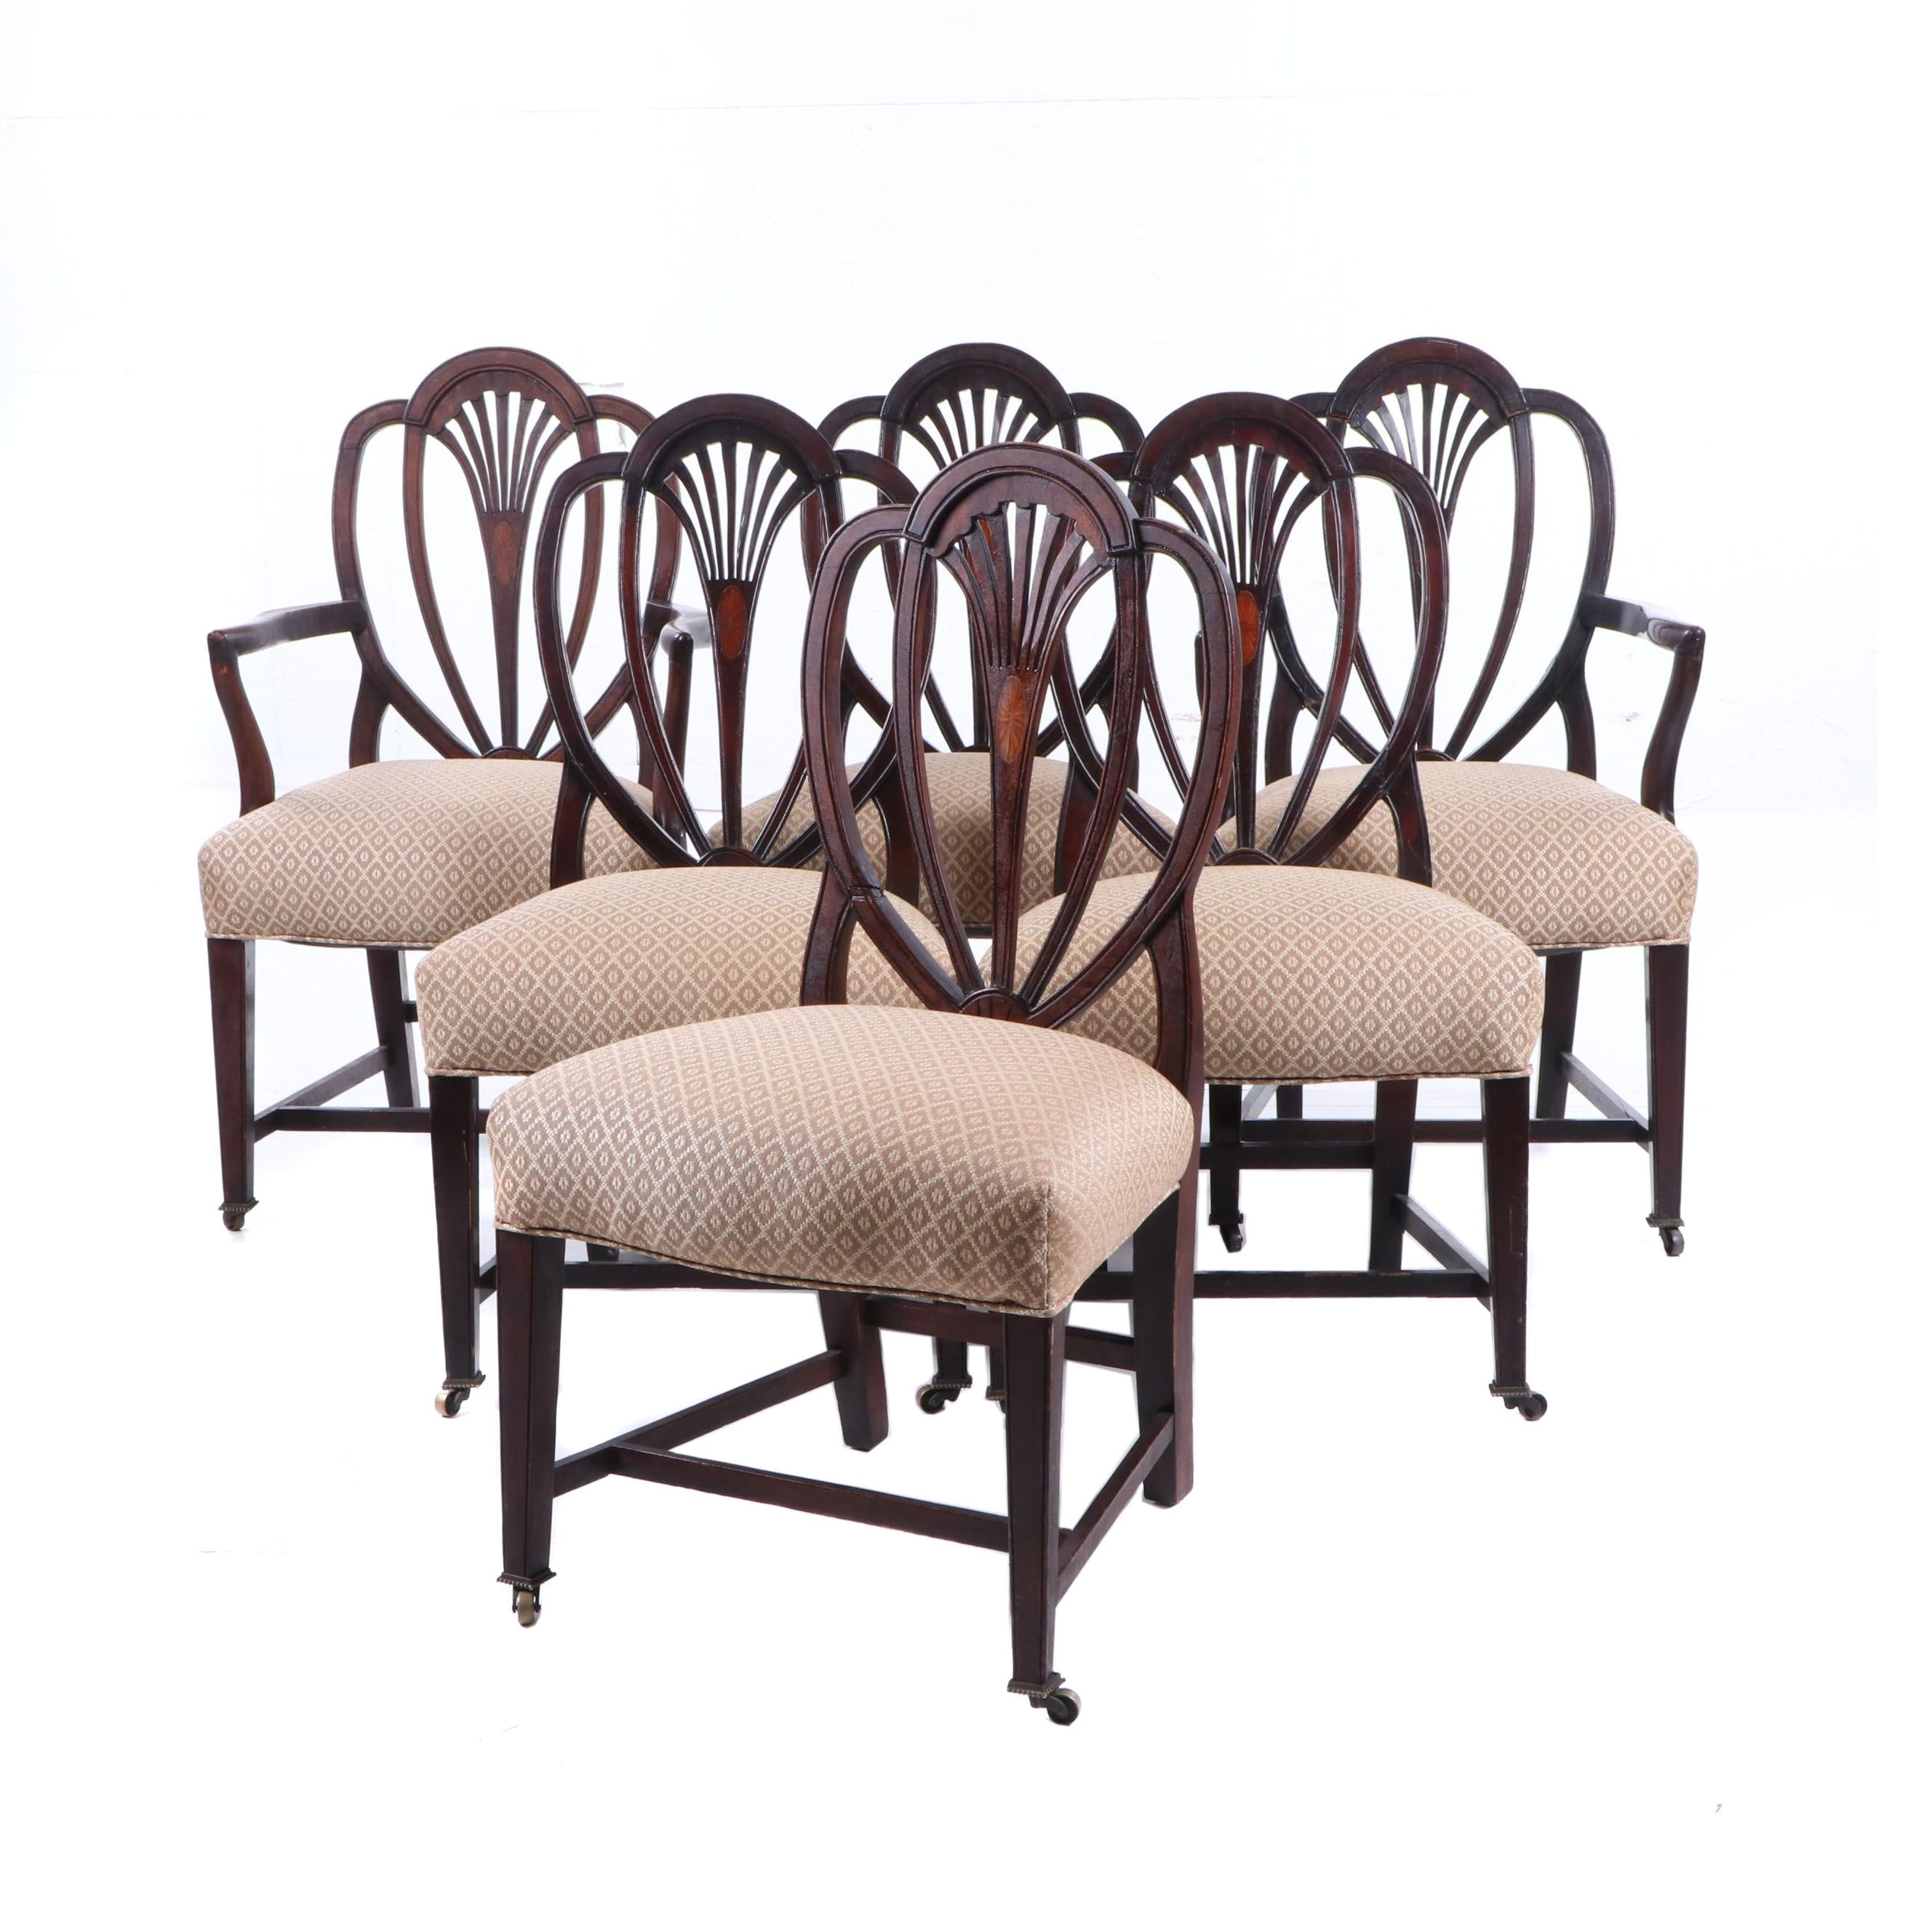 Federal Style Mahogany Dining Chairs on Casters, Early 19th Century